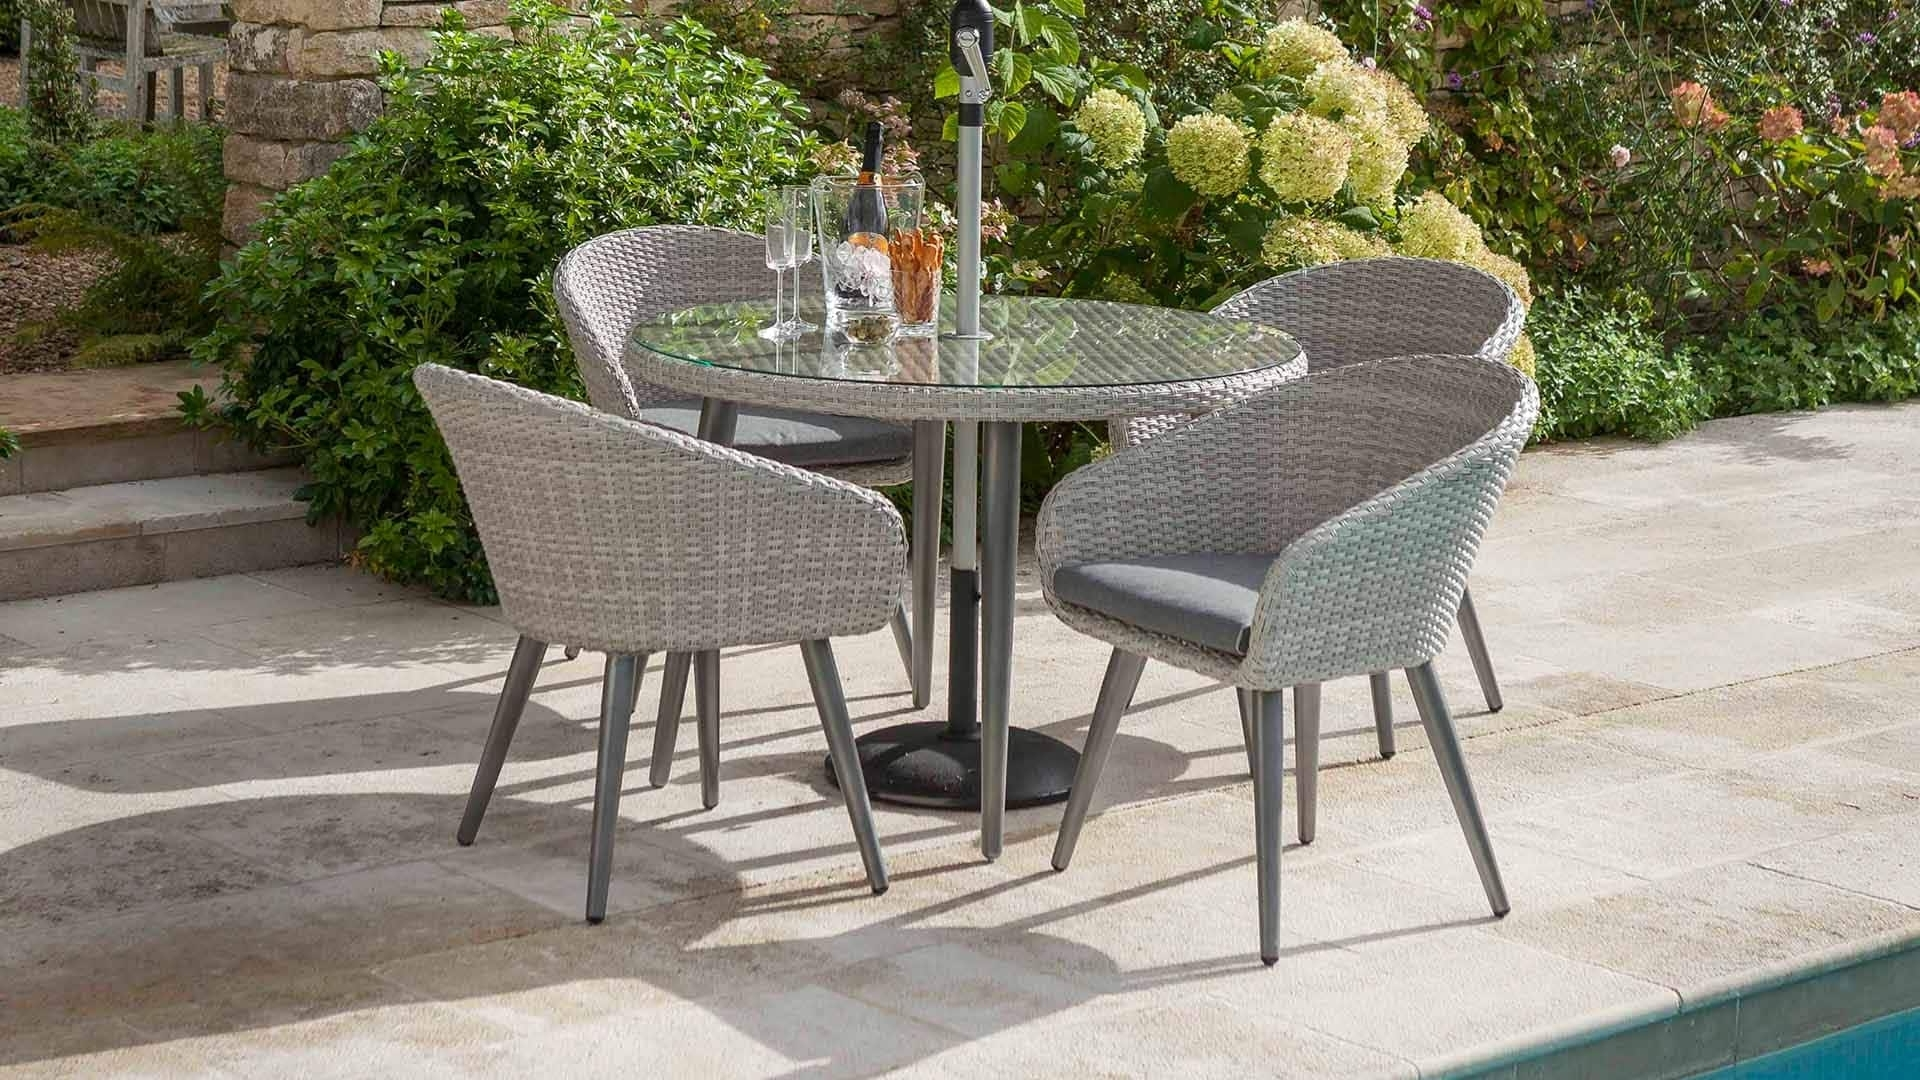 Most Popular Outdoor Sienna Dining Tables In Sienna 4 Seat Round Dining Set Antique White – Sienna – Wicker (View 19 of 25)